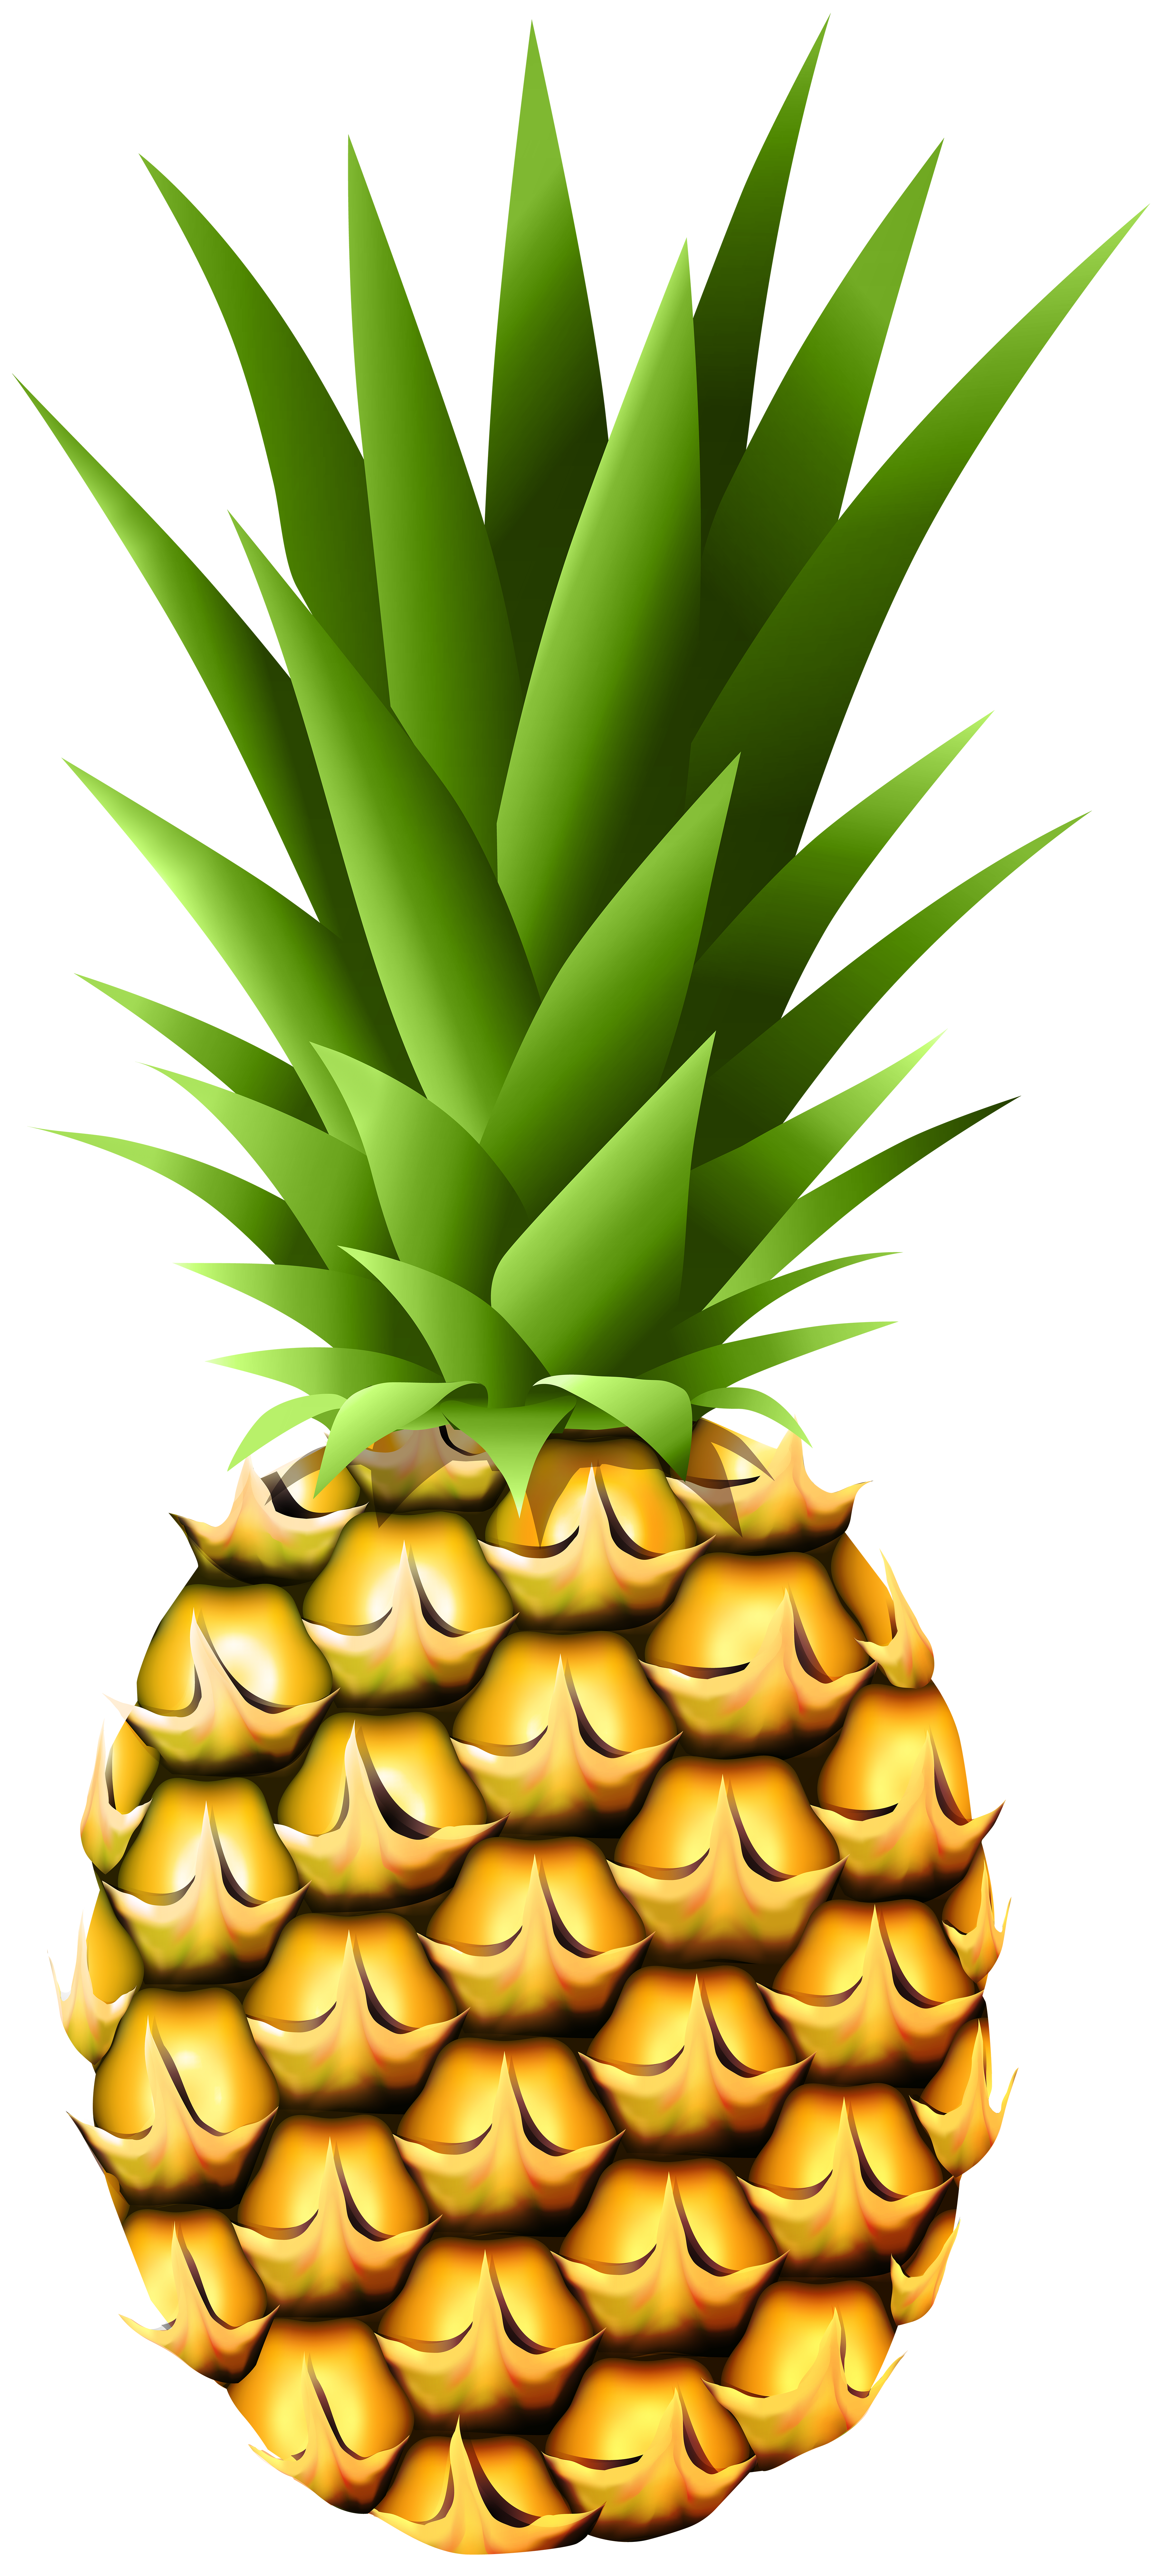 Pineapple Transparent PNG Clip Art Image.